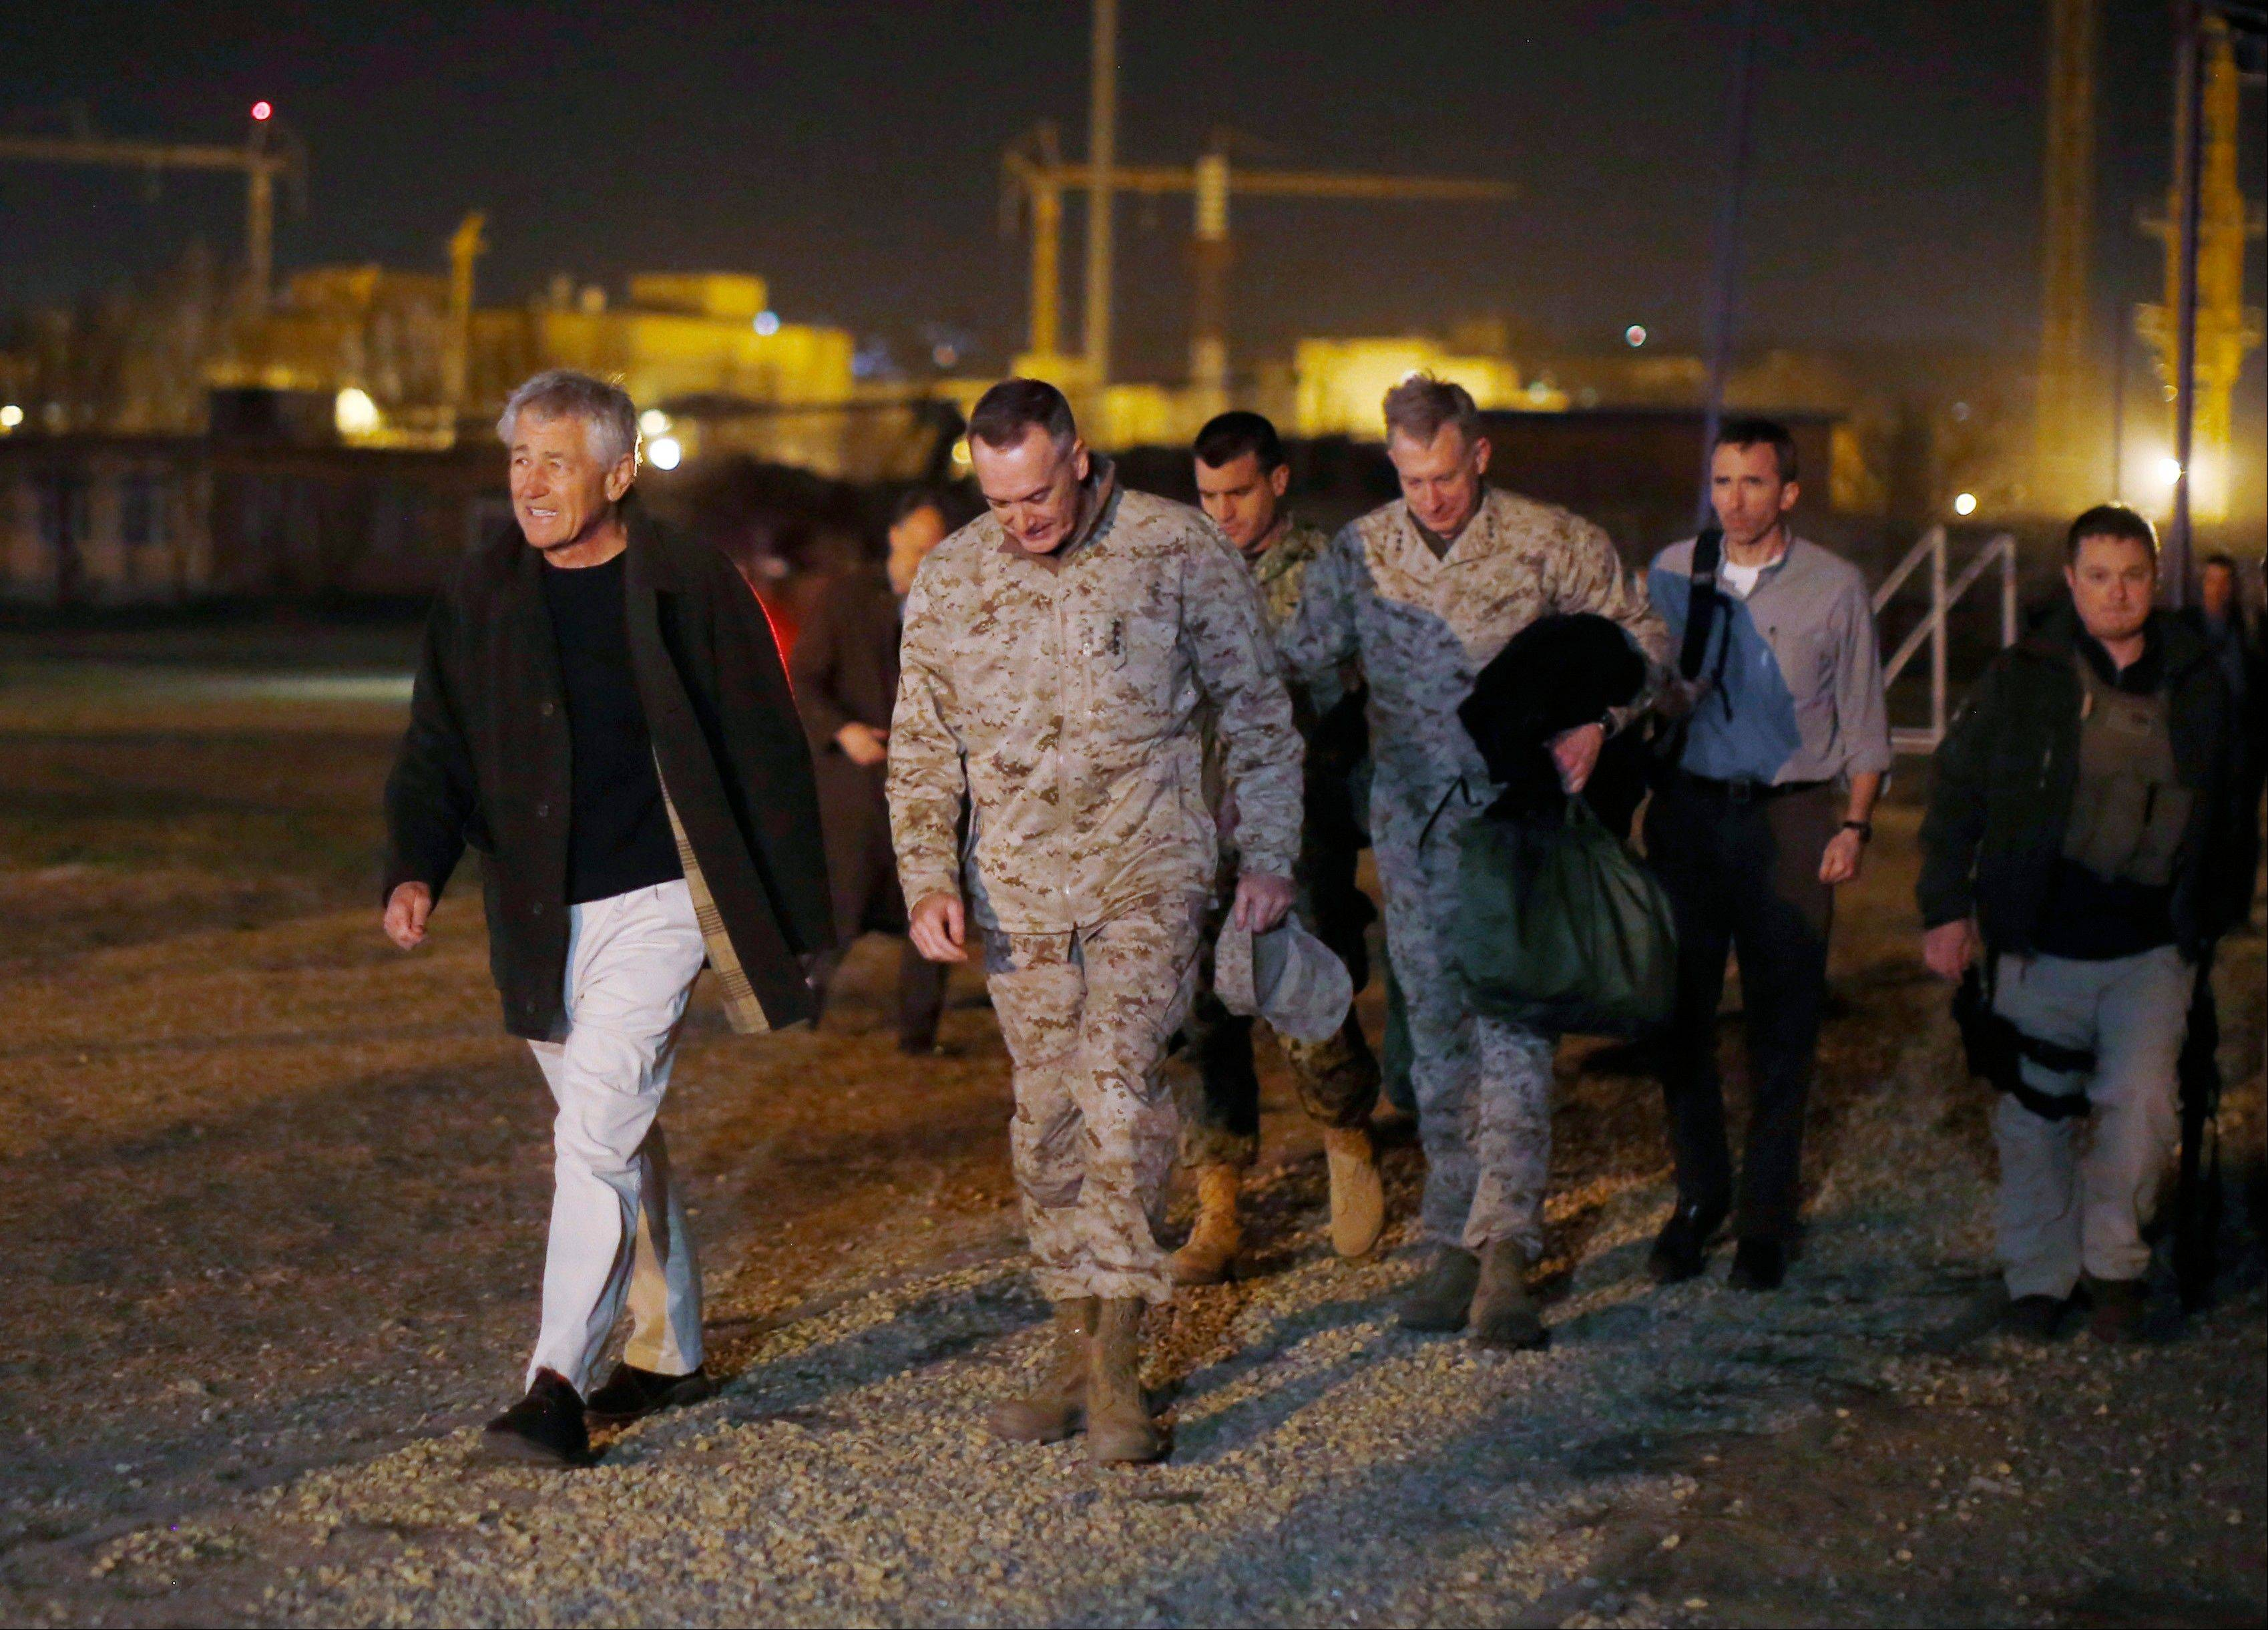 Defense Secretary Chuck Hagel walks Friday with U.S. Marine General Joseph Dunford, commander of the International Security Force, upon Hagel�s arrival near Camp Eggers in Kabul, Afghanistan.